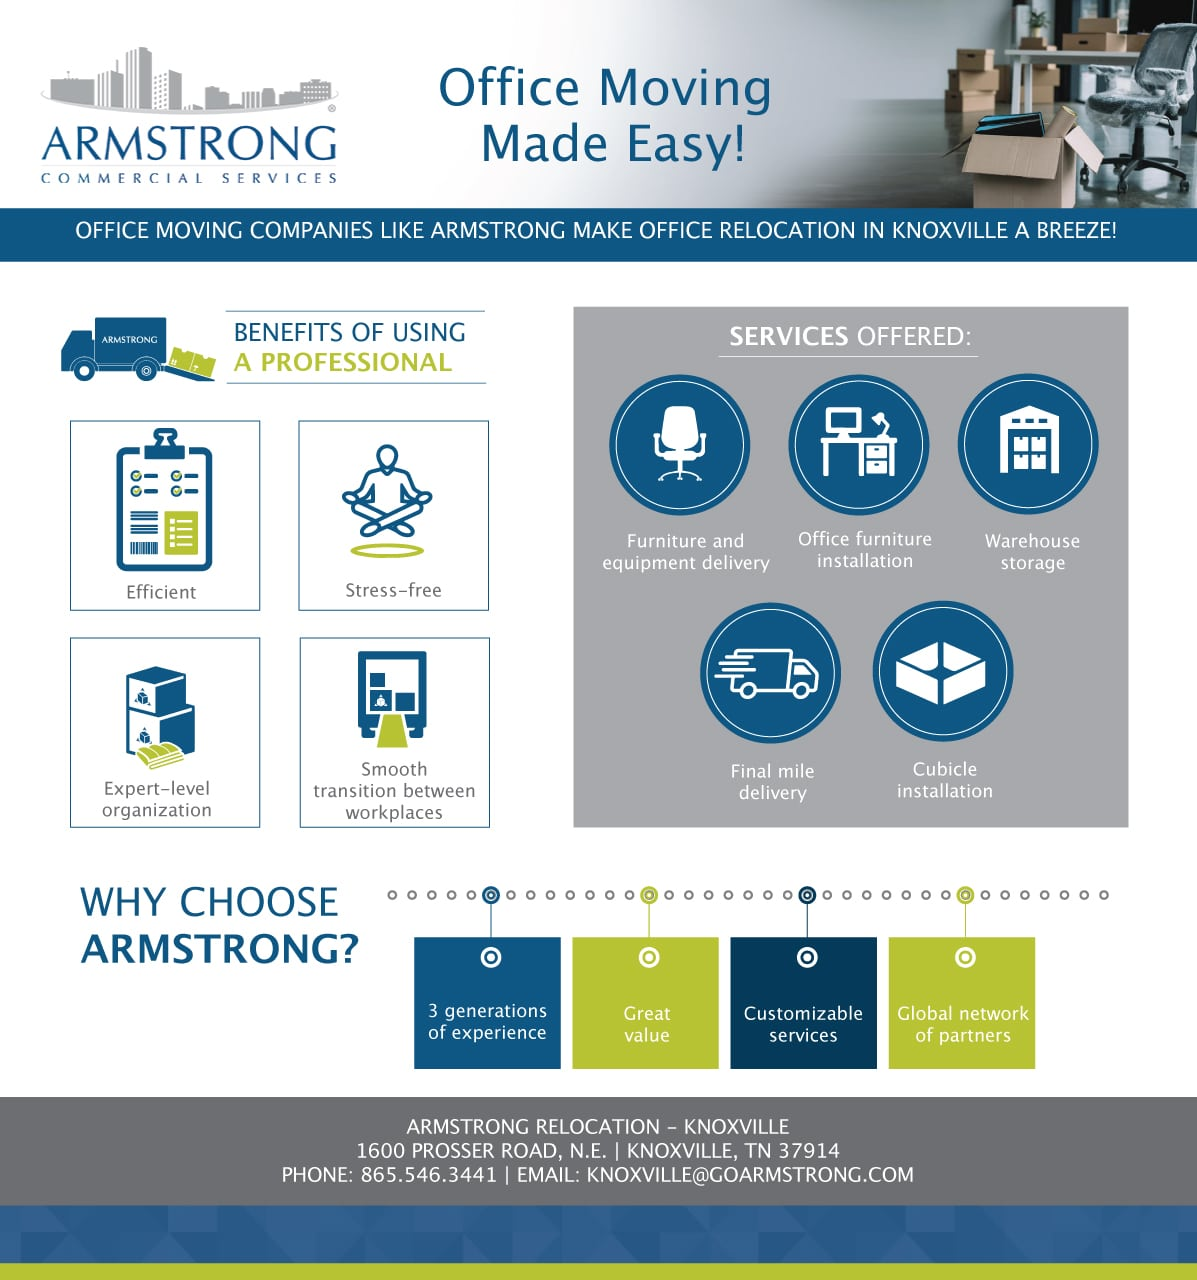 Reasons to use an office moving company